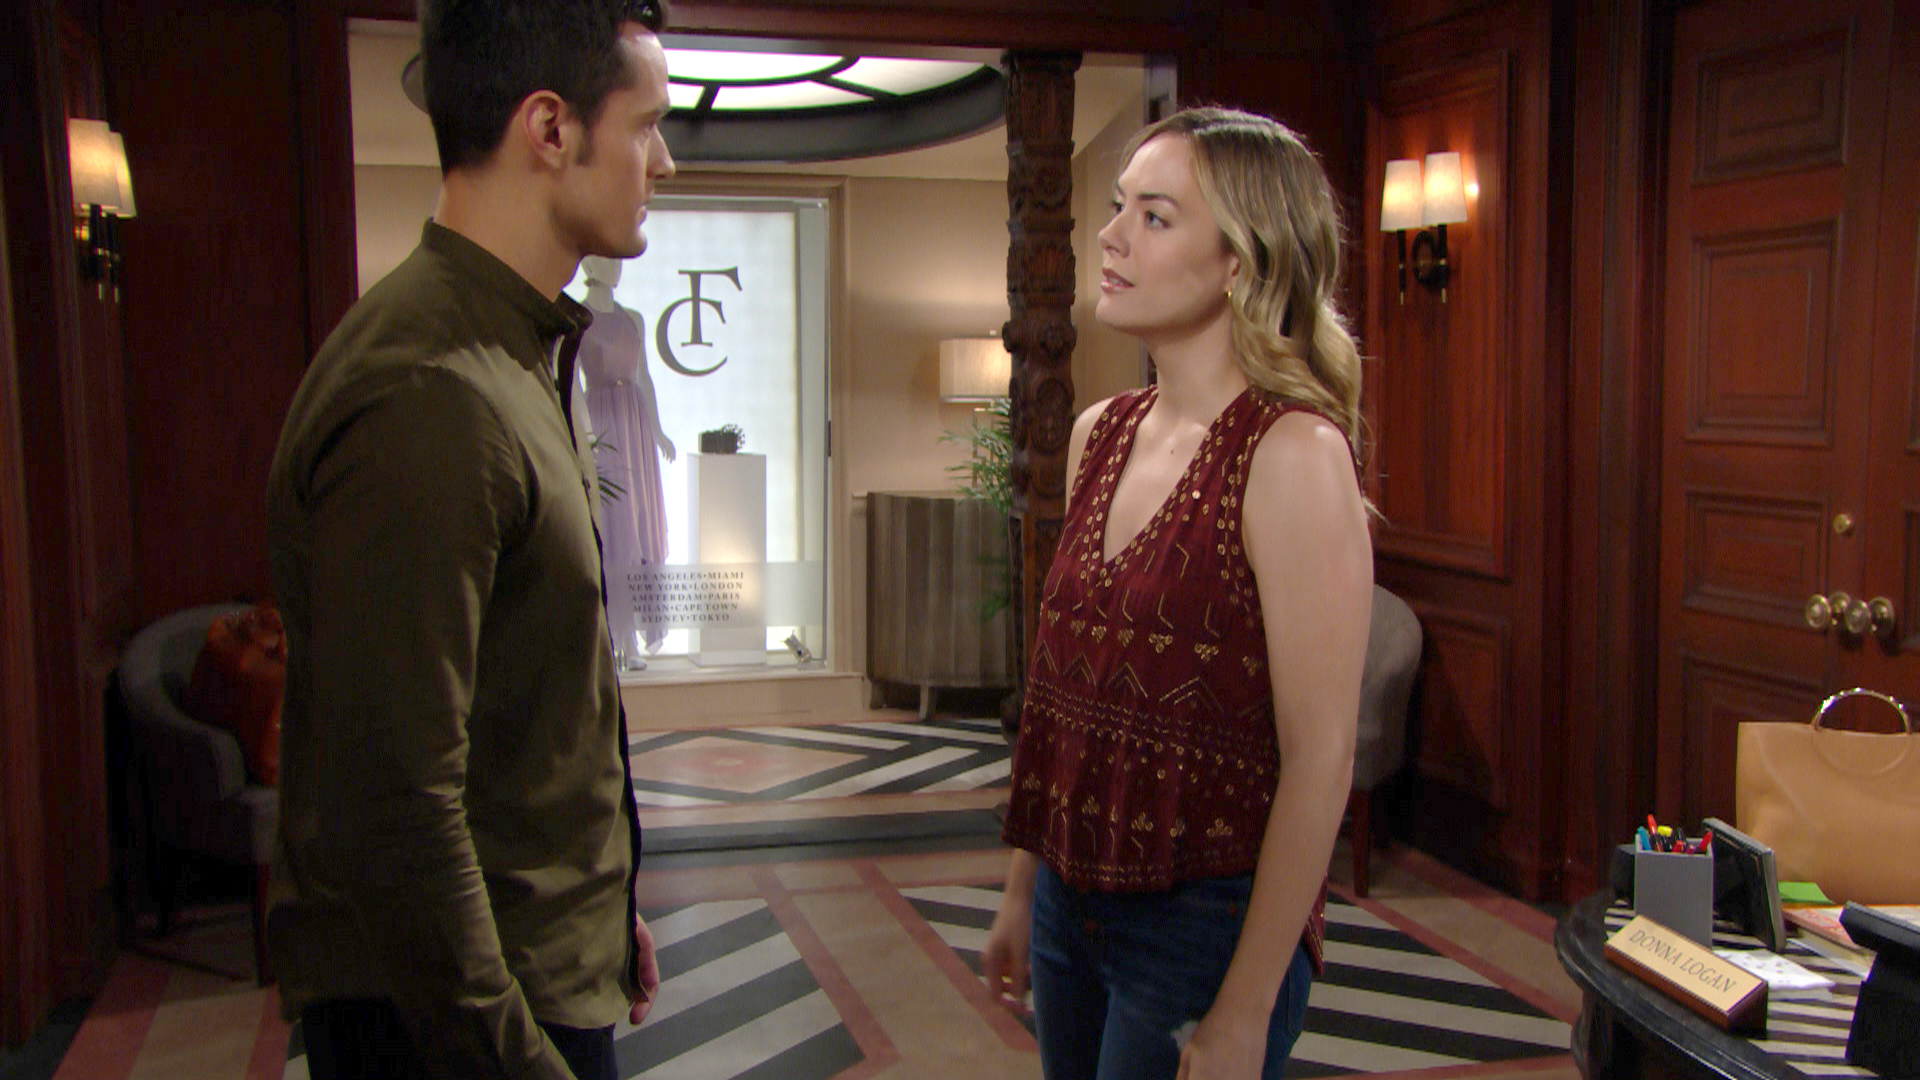 Watch The Bold and the Beautiful Season 32 Episode 221: 8/2/2019 - Full  show on CBS All Access